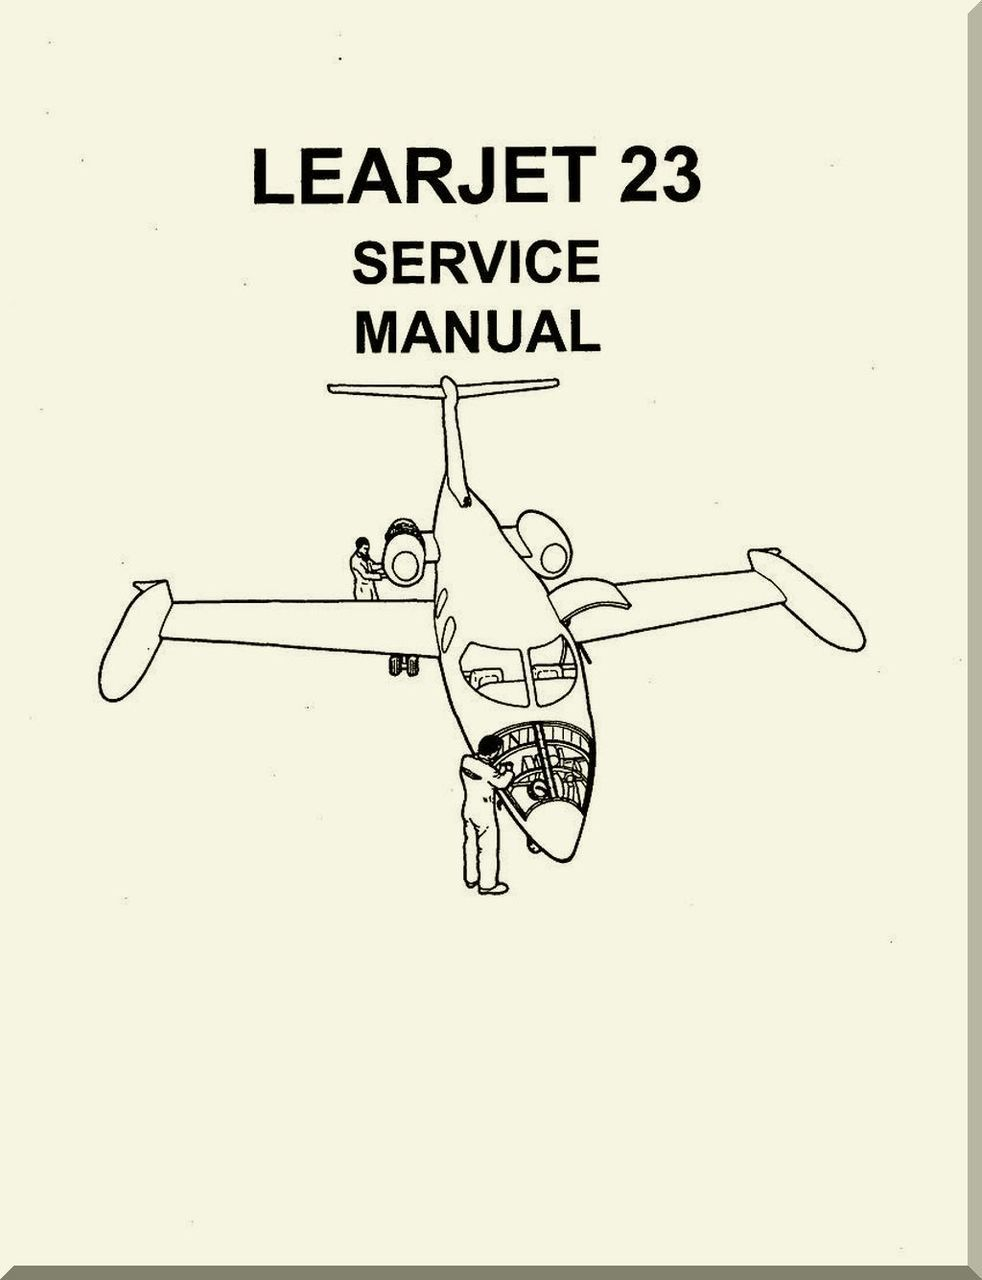 Learjet 23 Series Aircraft Service Manual - Aircraft Reports - Aircraft  Manuals - Aircraft Helicopter Engines Propellers Blueprints Publications